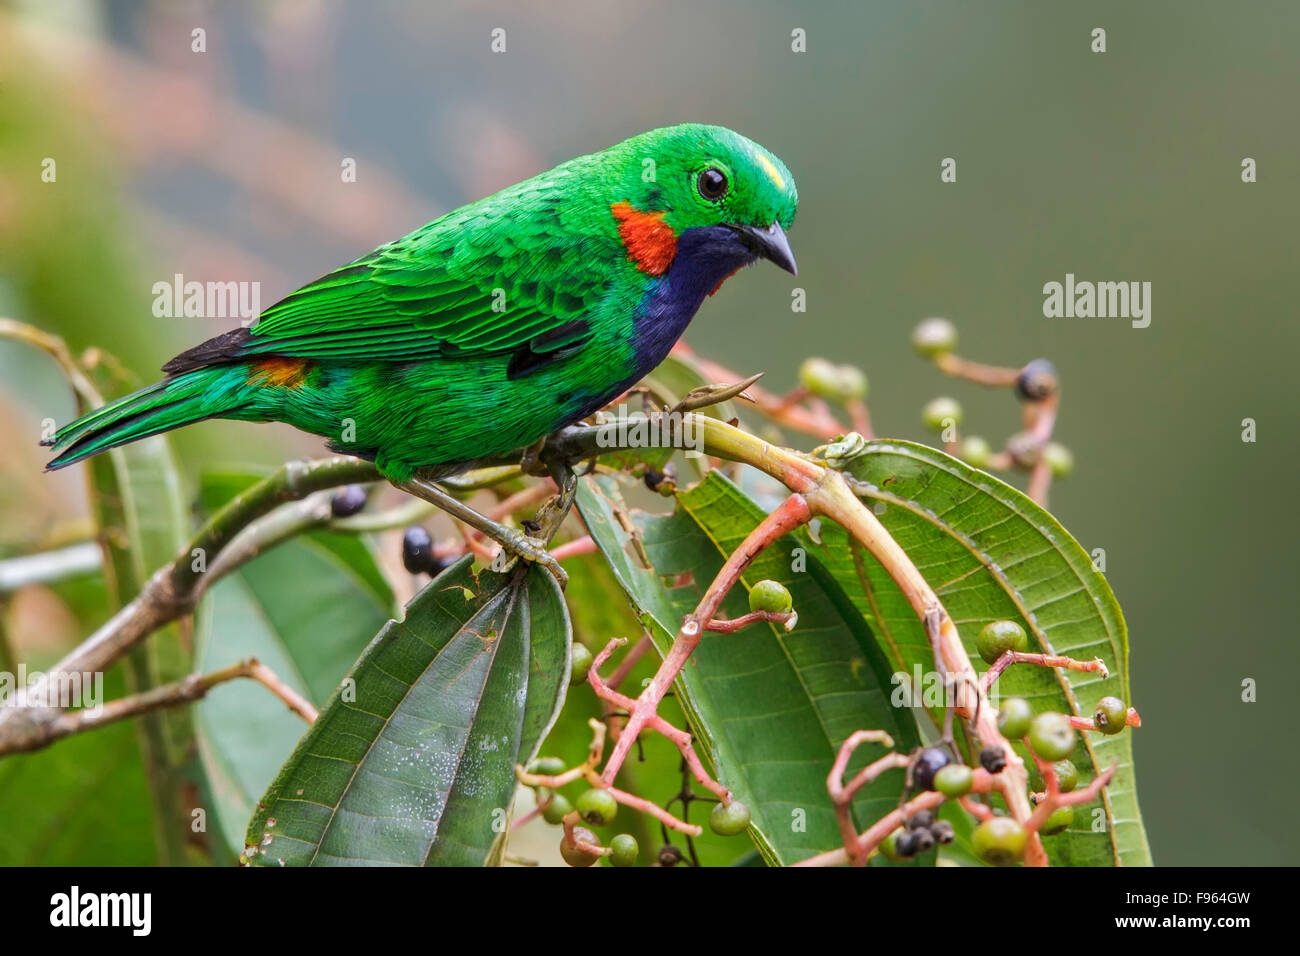 Orangeeared Tanager (Chlorochrysa calliparaea) perched on a branch in Manu National Park, Peru. - Stock Image